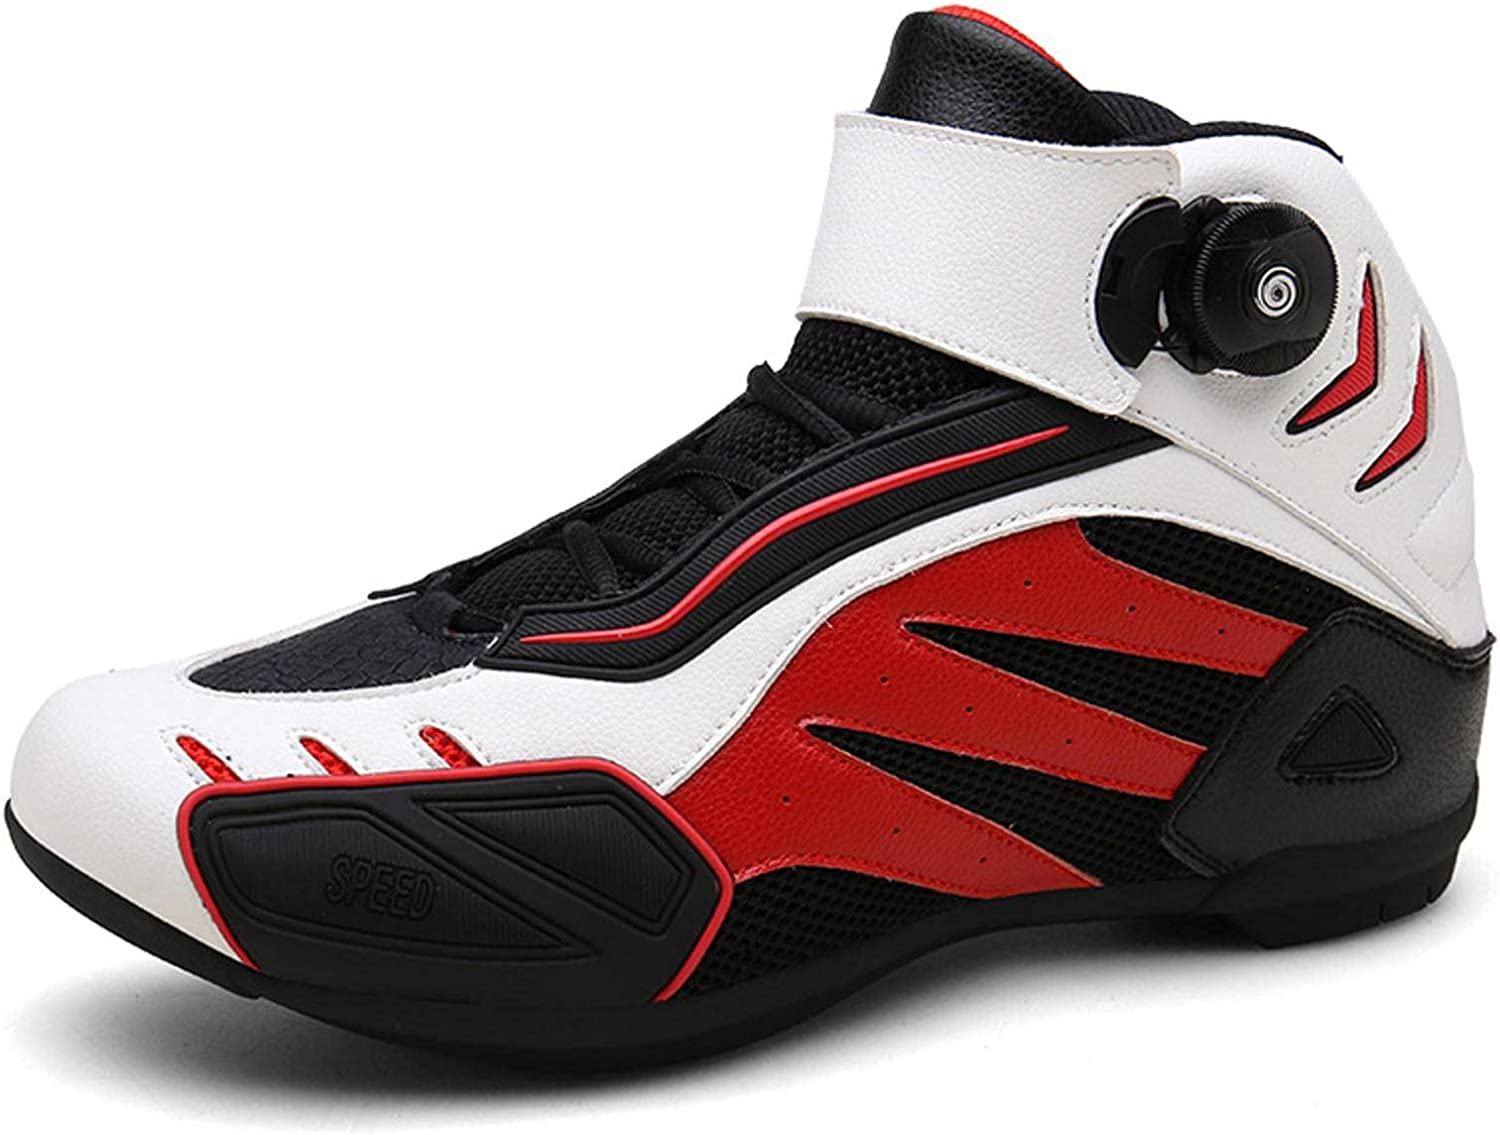 N\C Bicycle Great unisex interest Shoes Motorcycle Sports Cycling